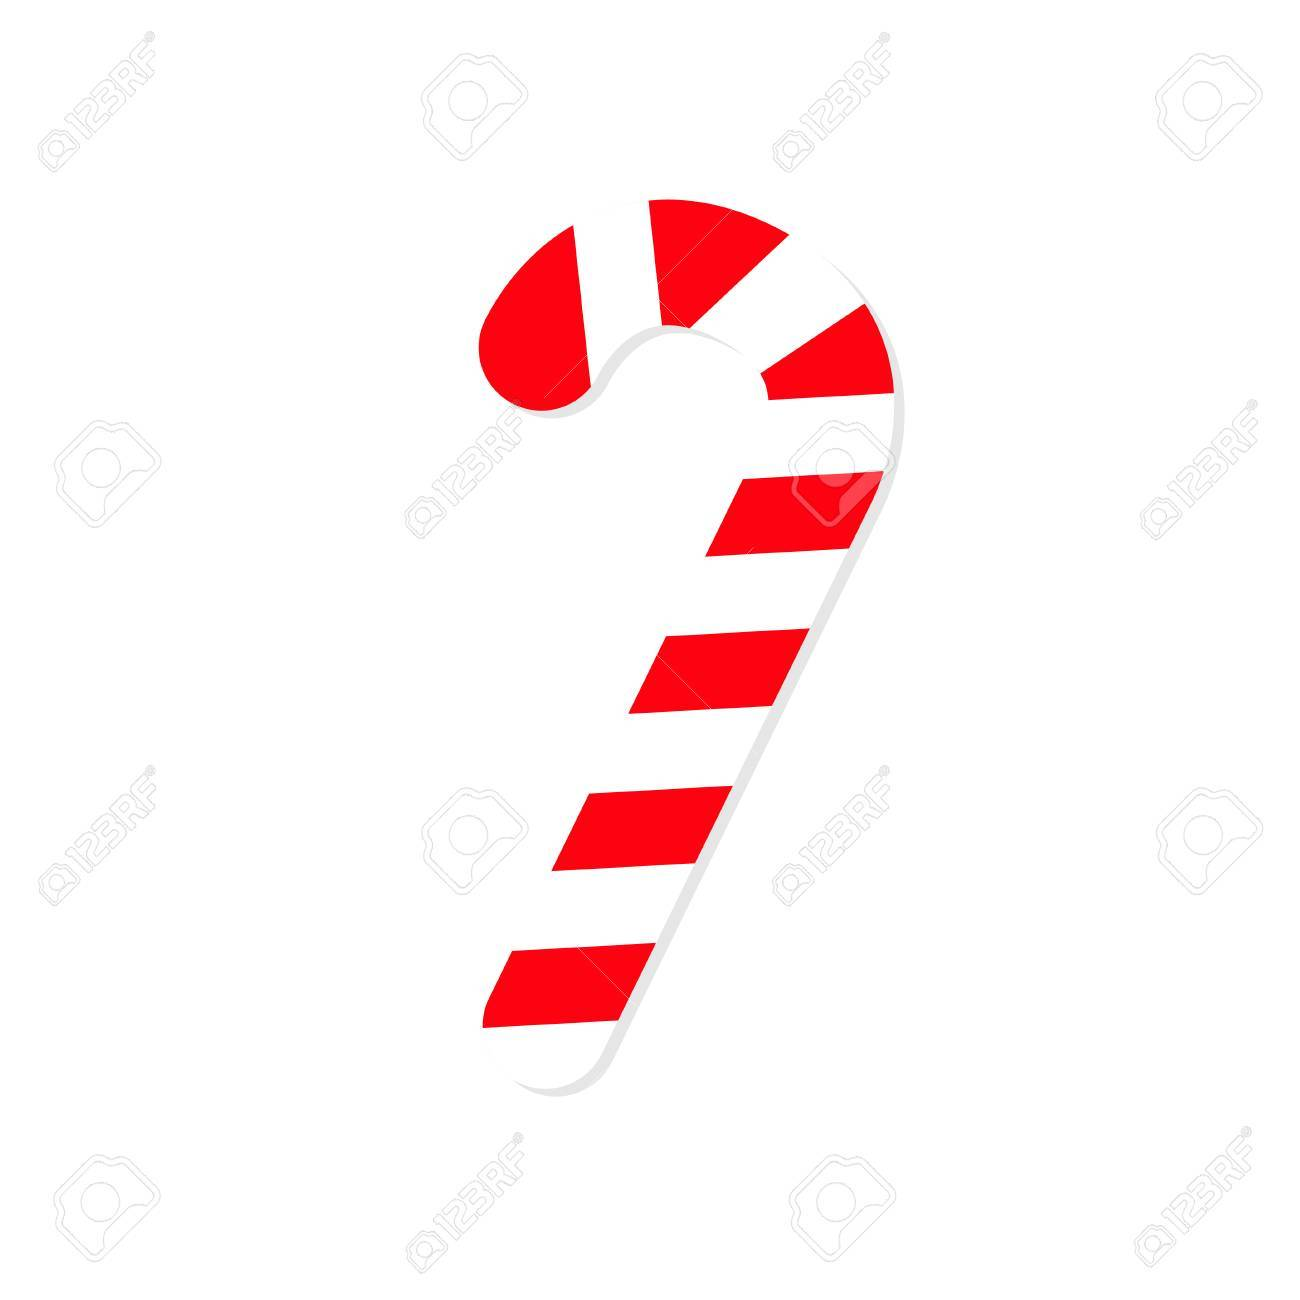 merry christmas candy cane isolated flat design white background rh 123rf com candy cane vector free download candy cane vector pattern